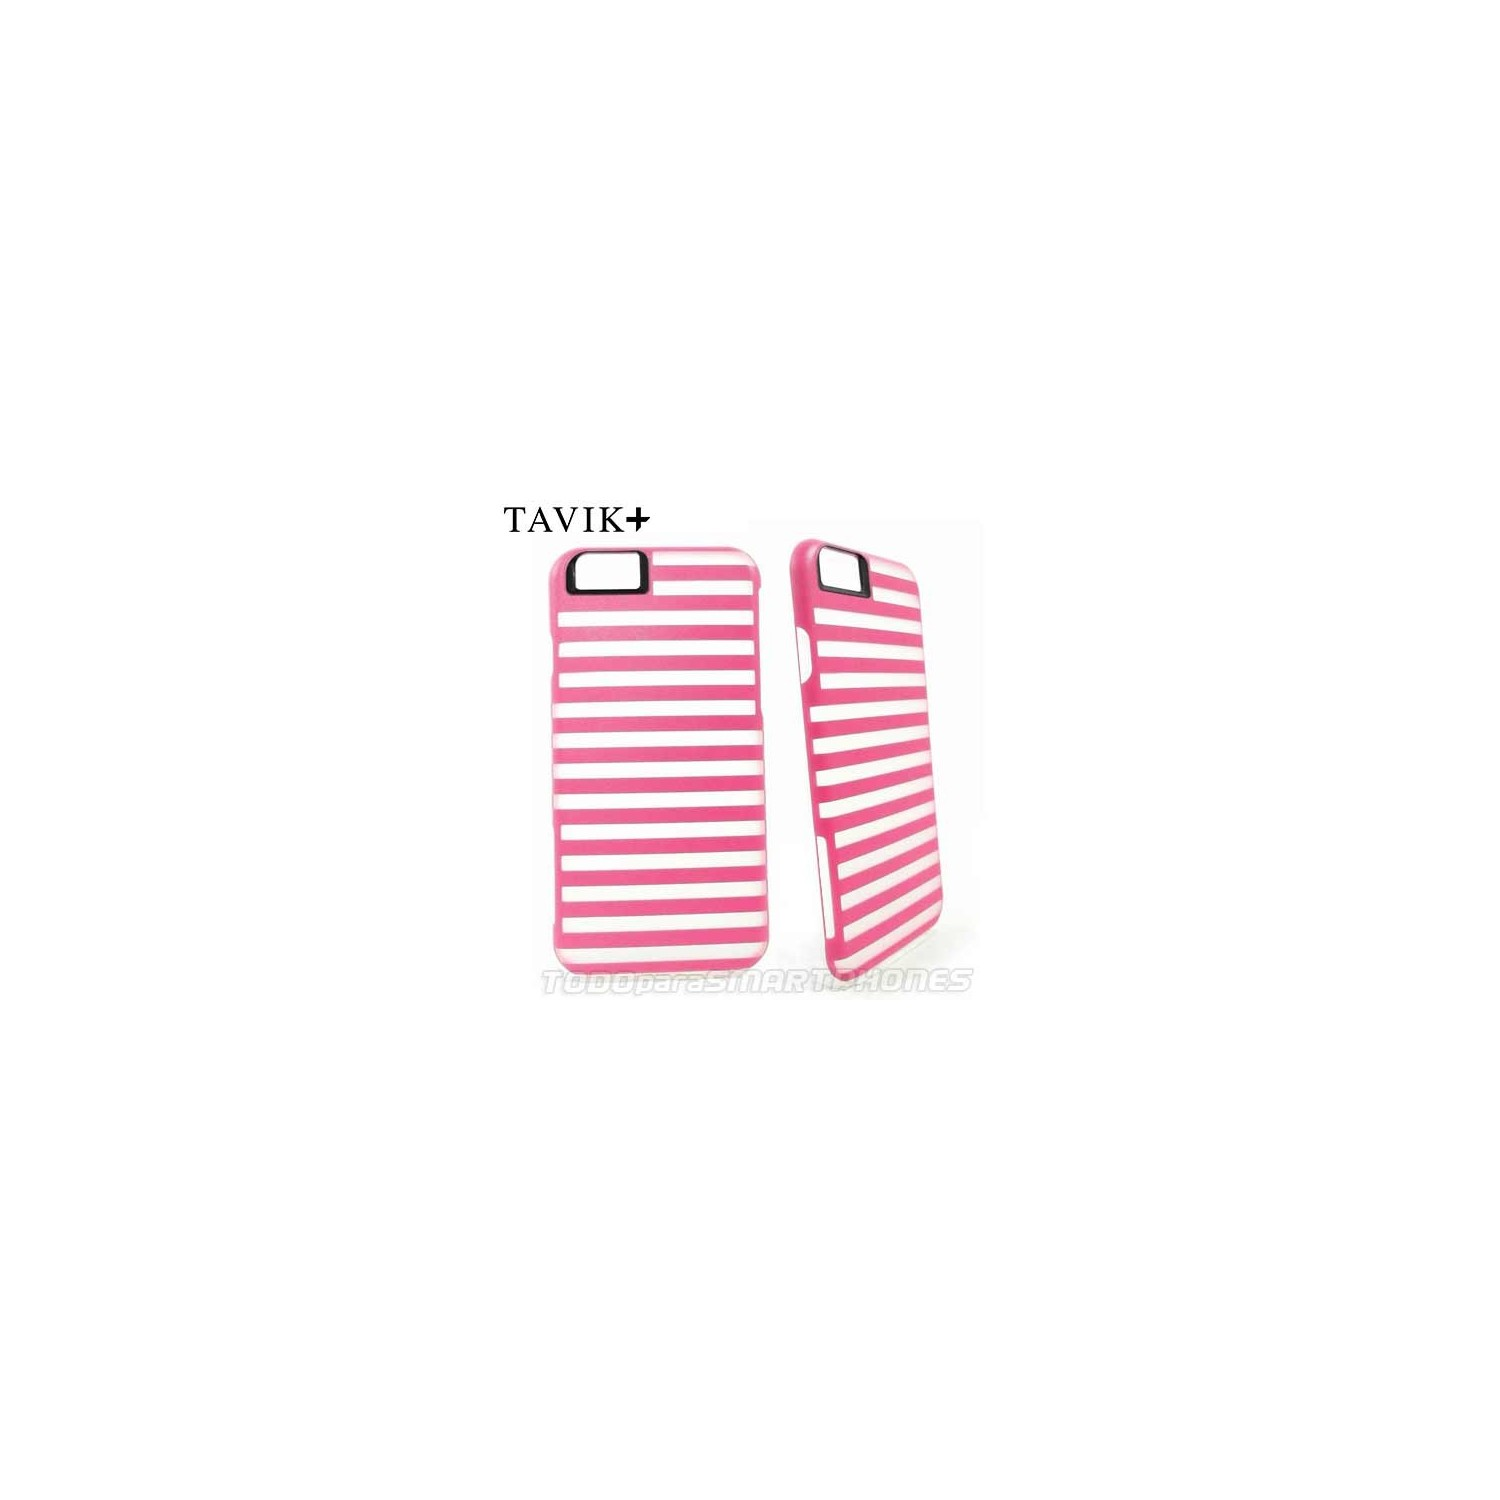 Case - TAVIK Bumper for iPhone 6/6s Pink White